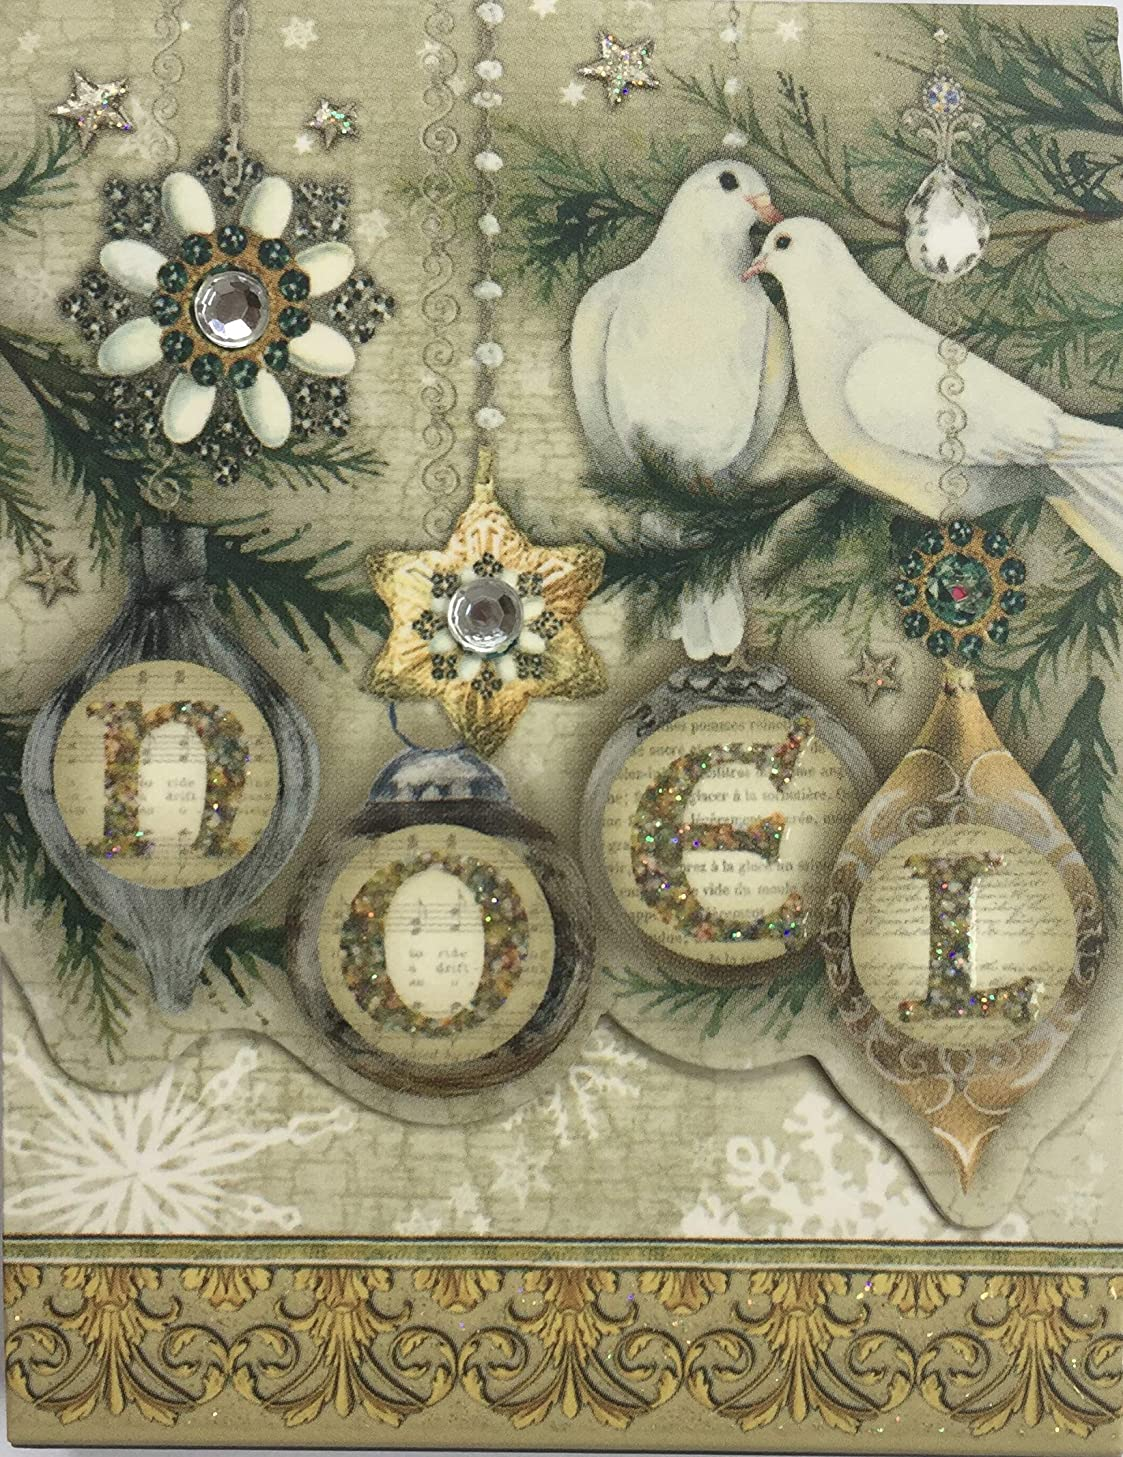 Punch Studio 75-Sheet Faux Gem and Glitter Mini Pocket Notepad - Noel with Doves and Ornaments